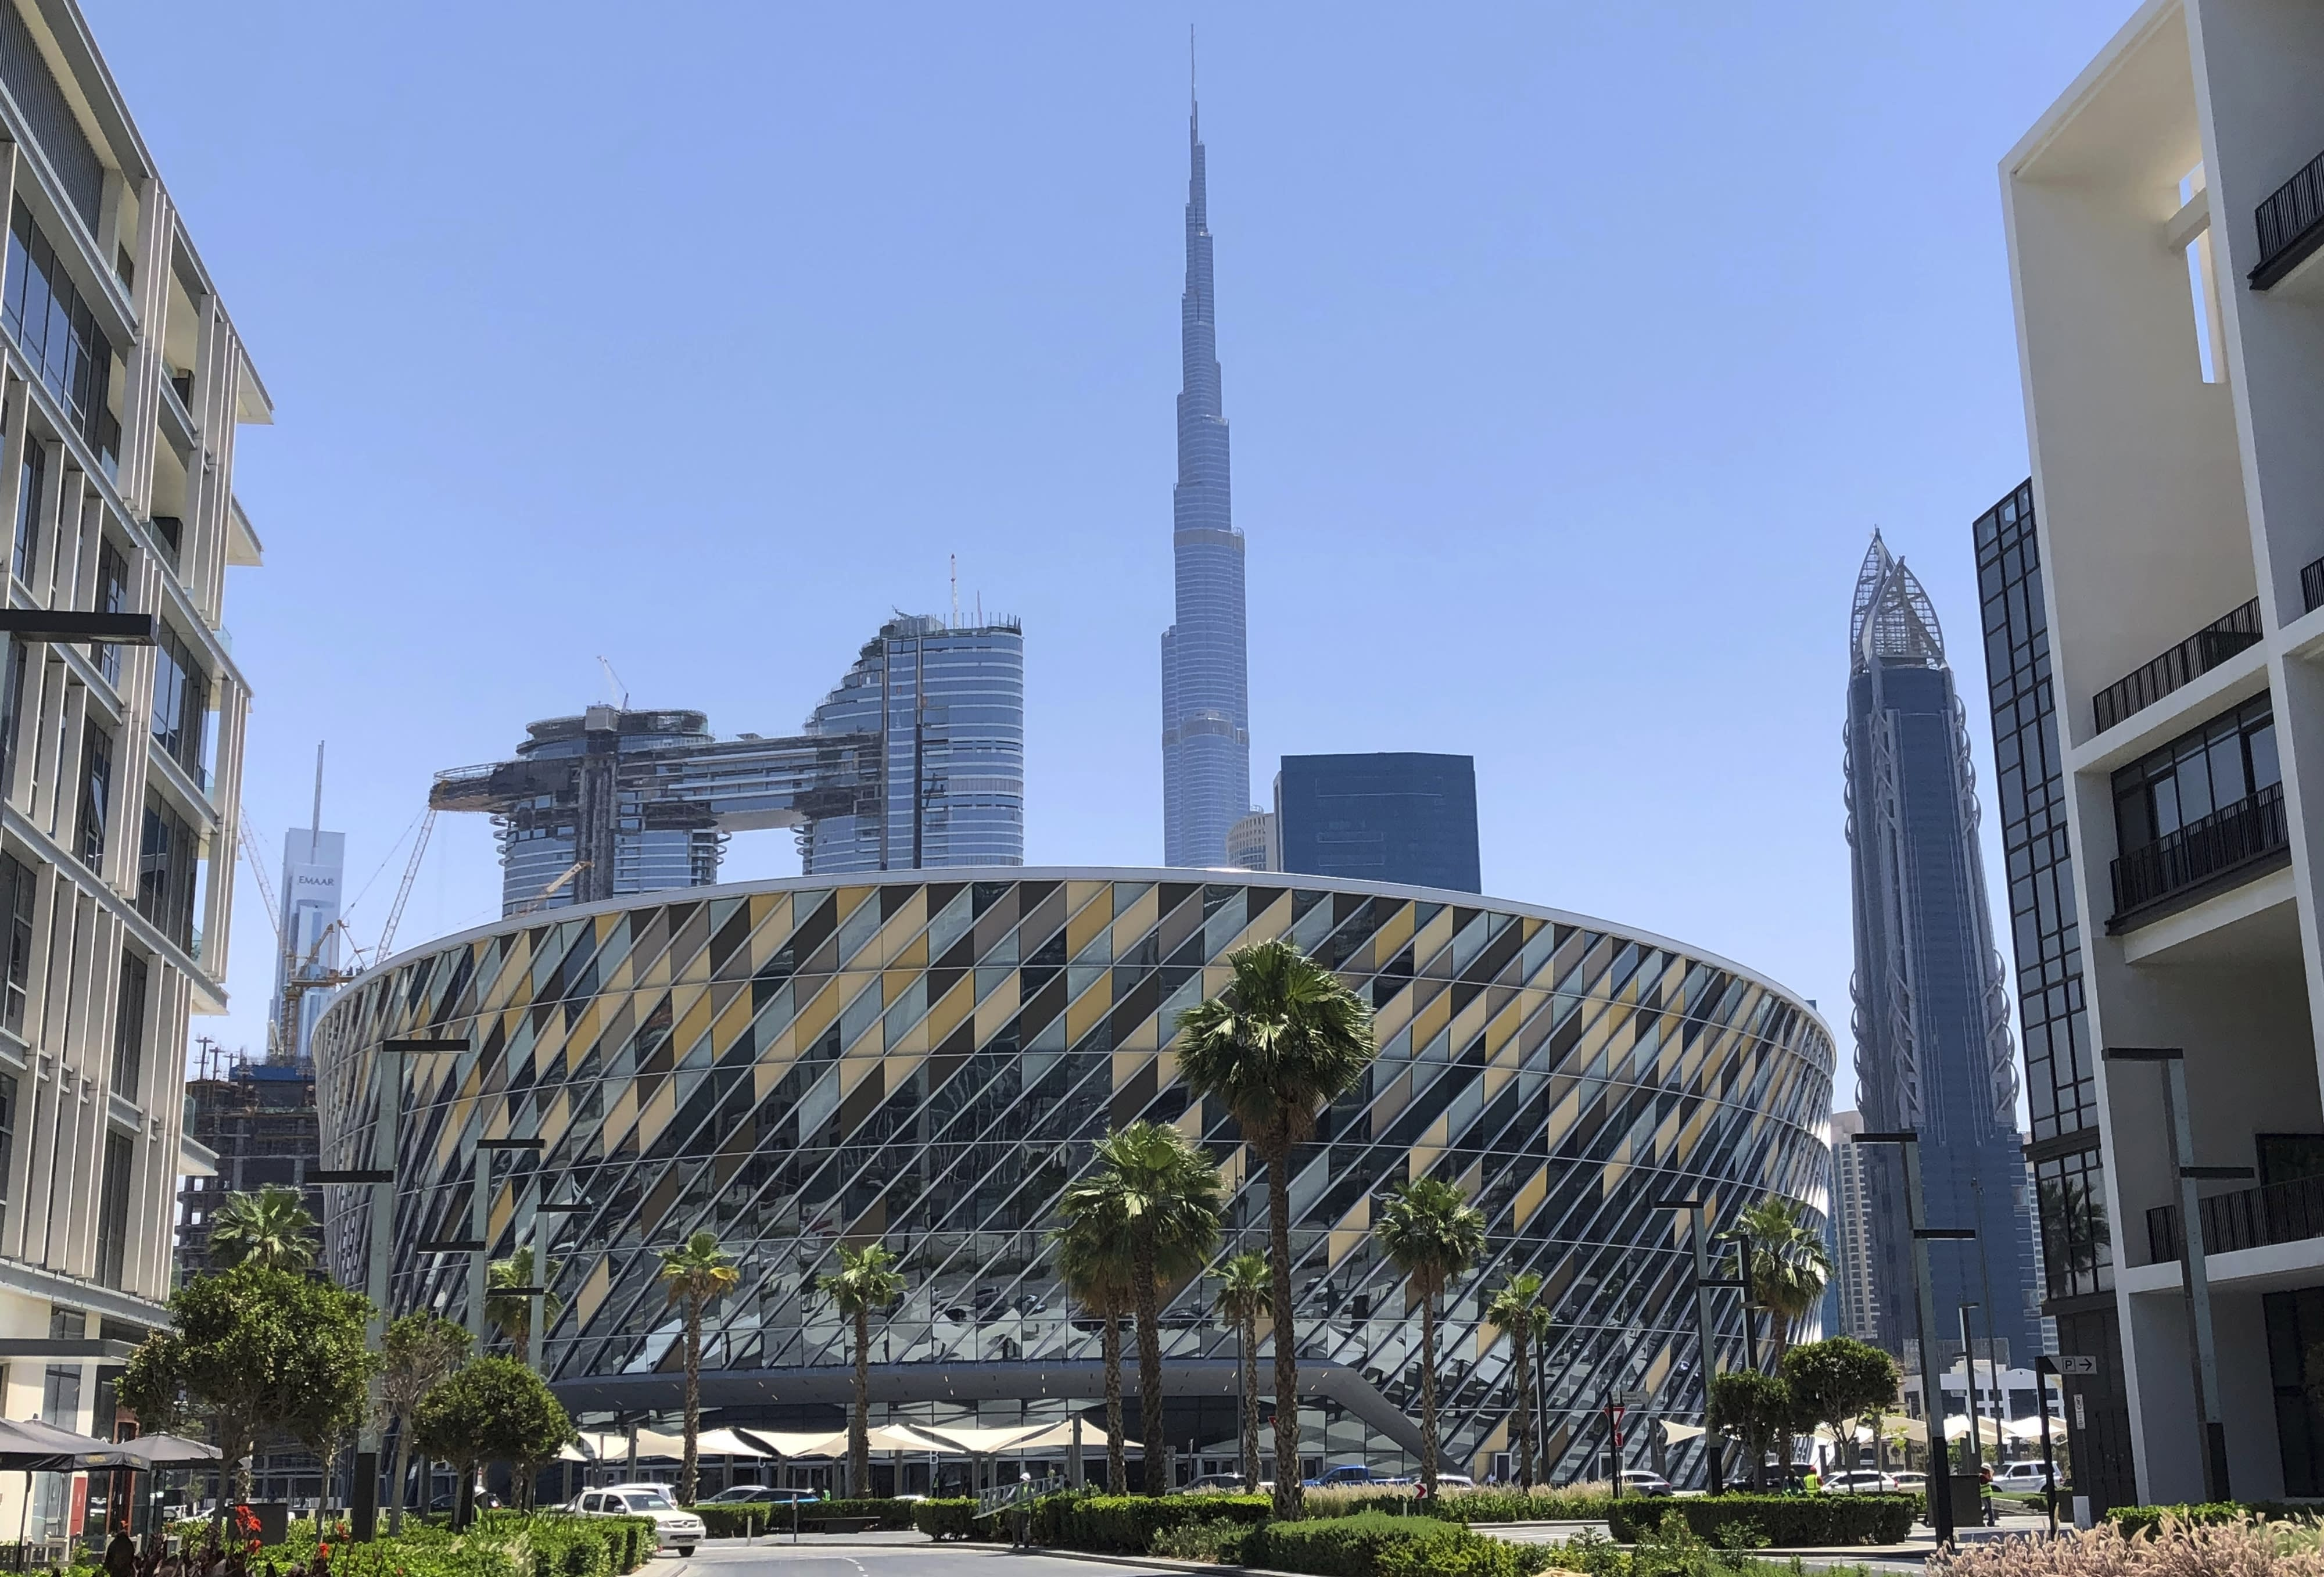 Dubai arena is latest project unveiled despite weaker growth